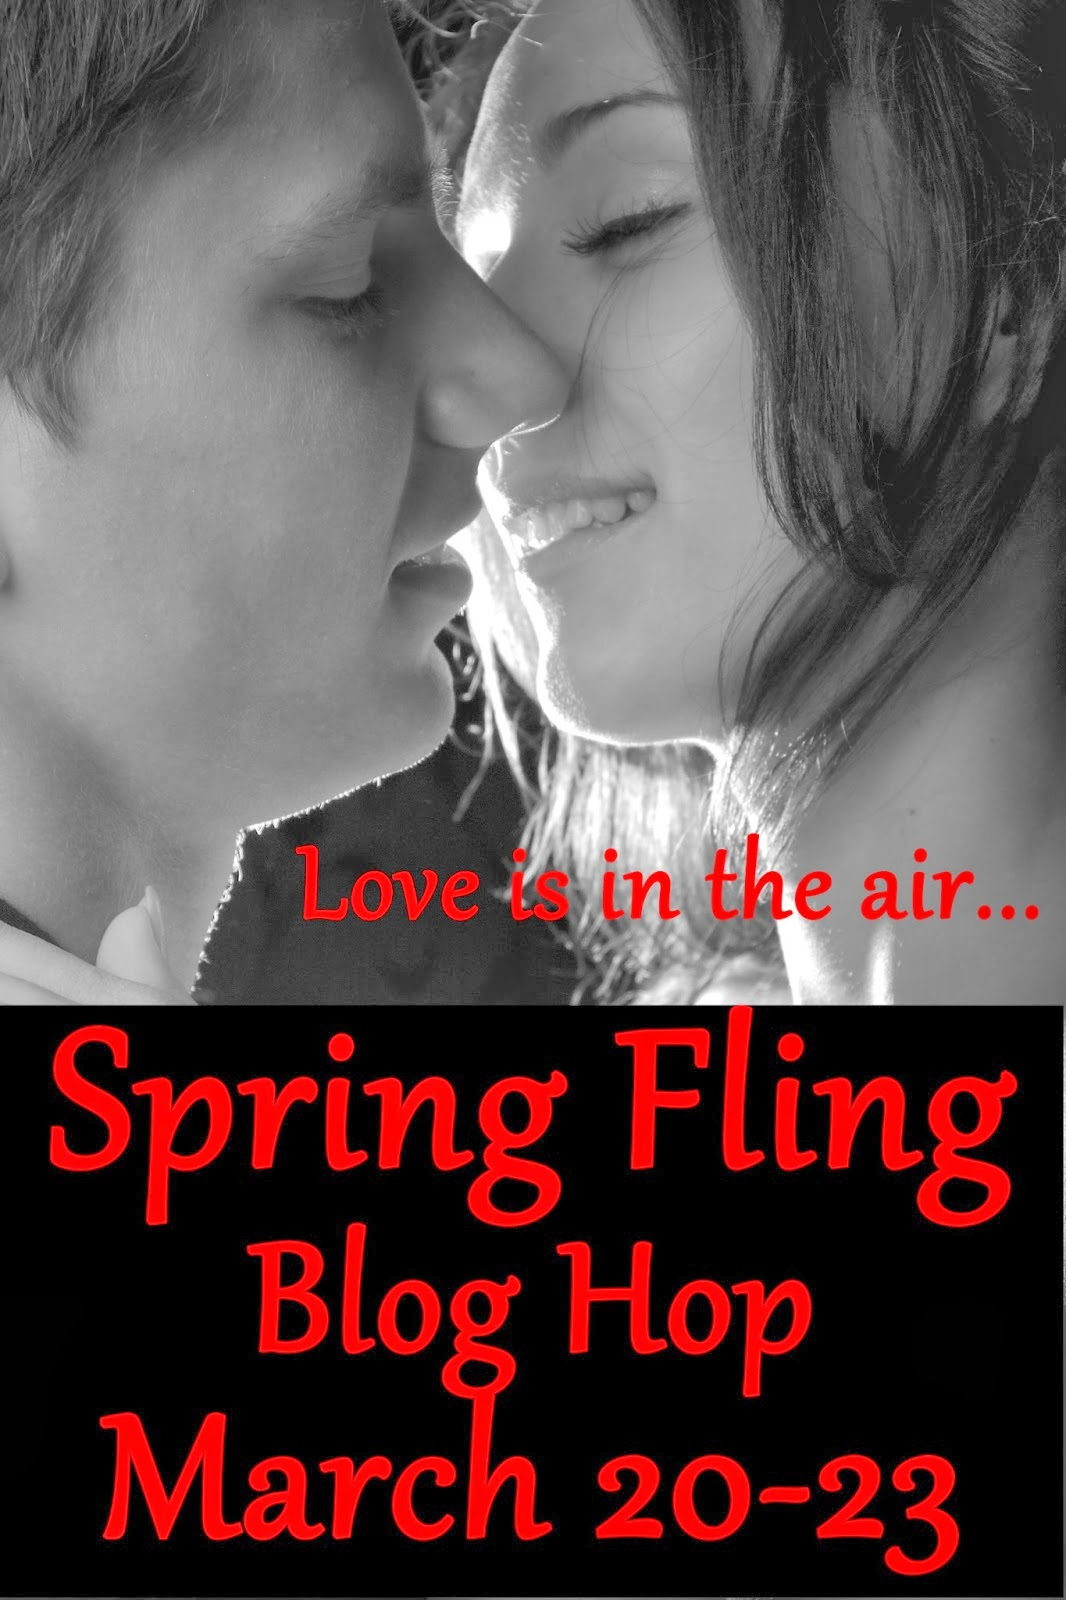 Spring Fling Blog Hop - March 20-23